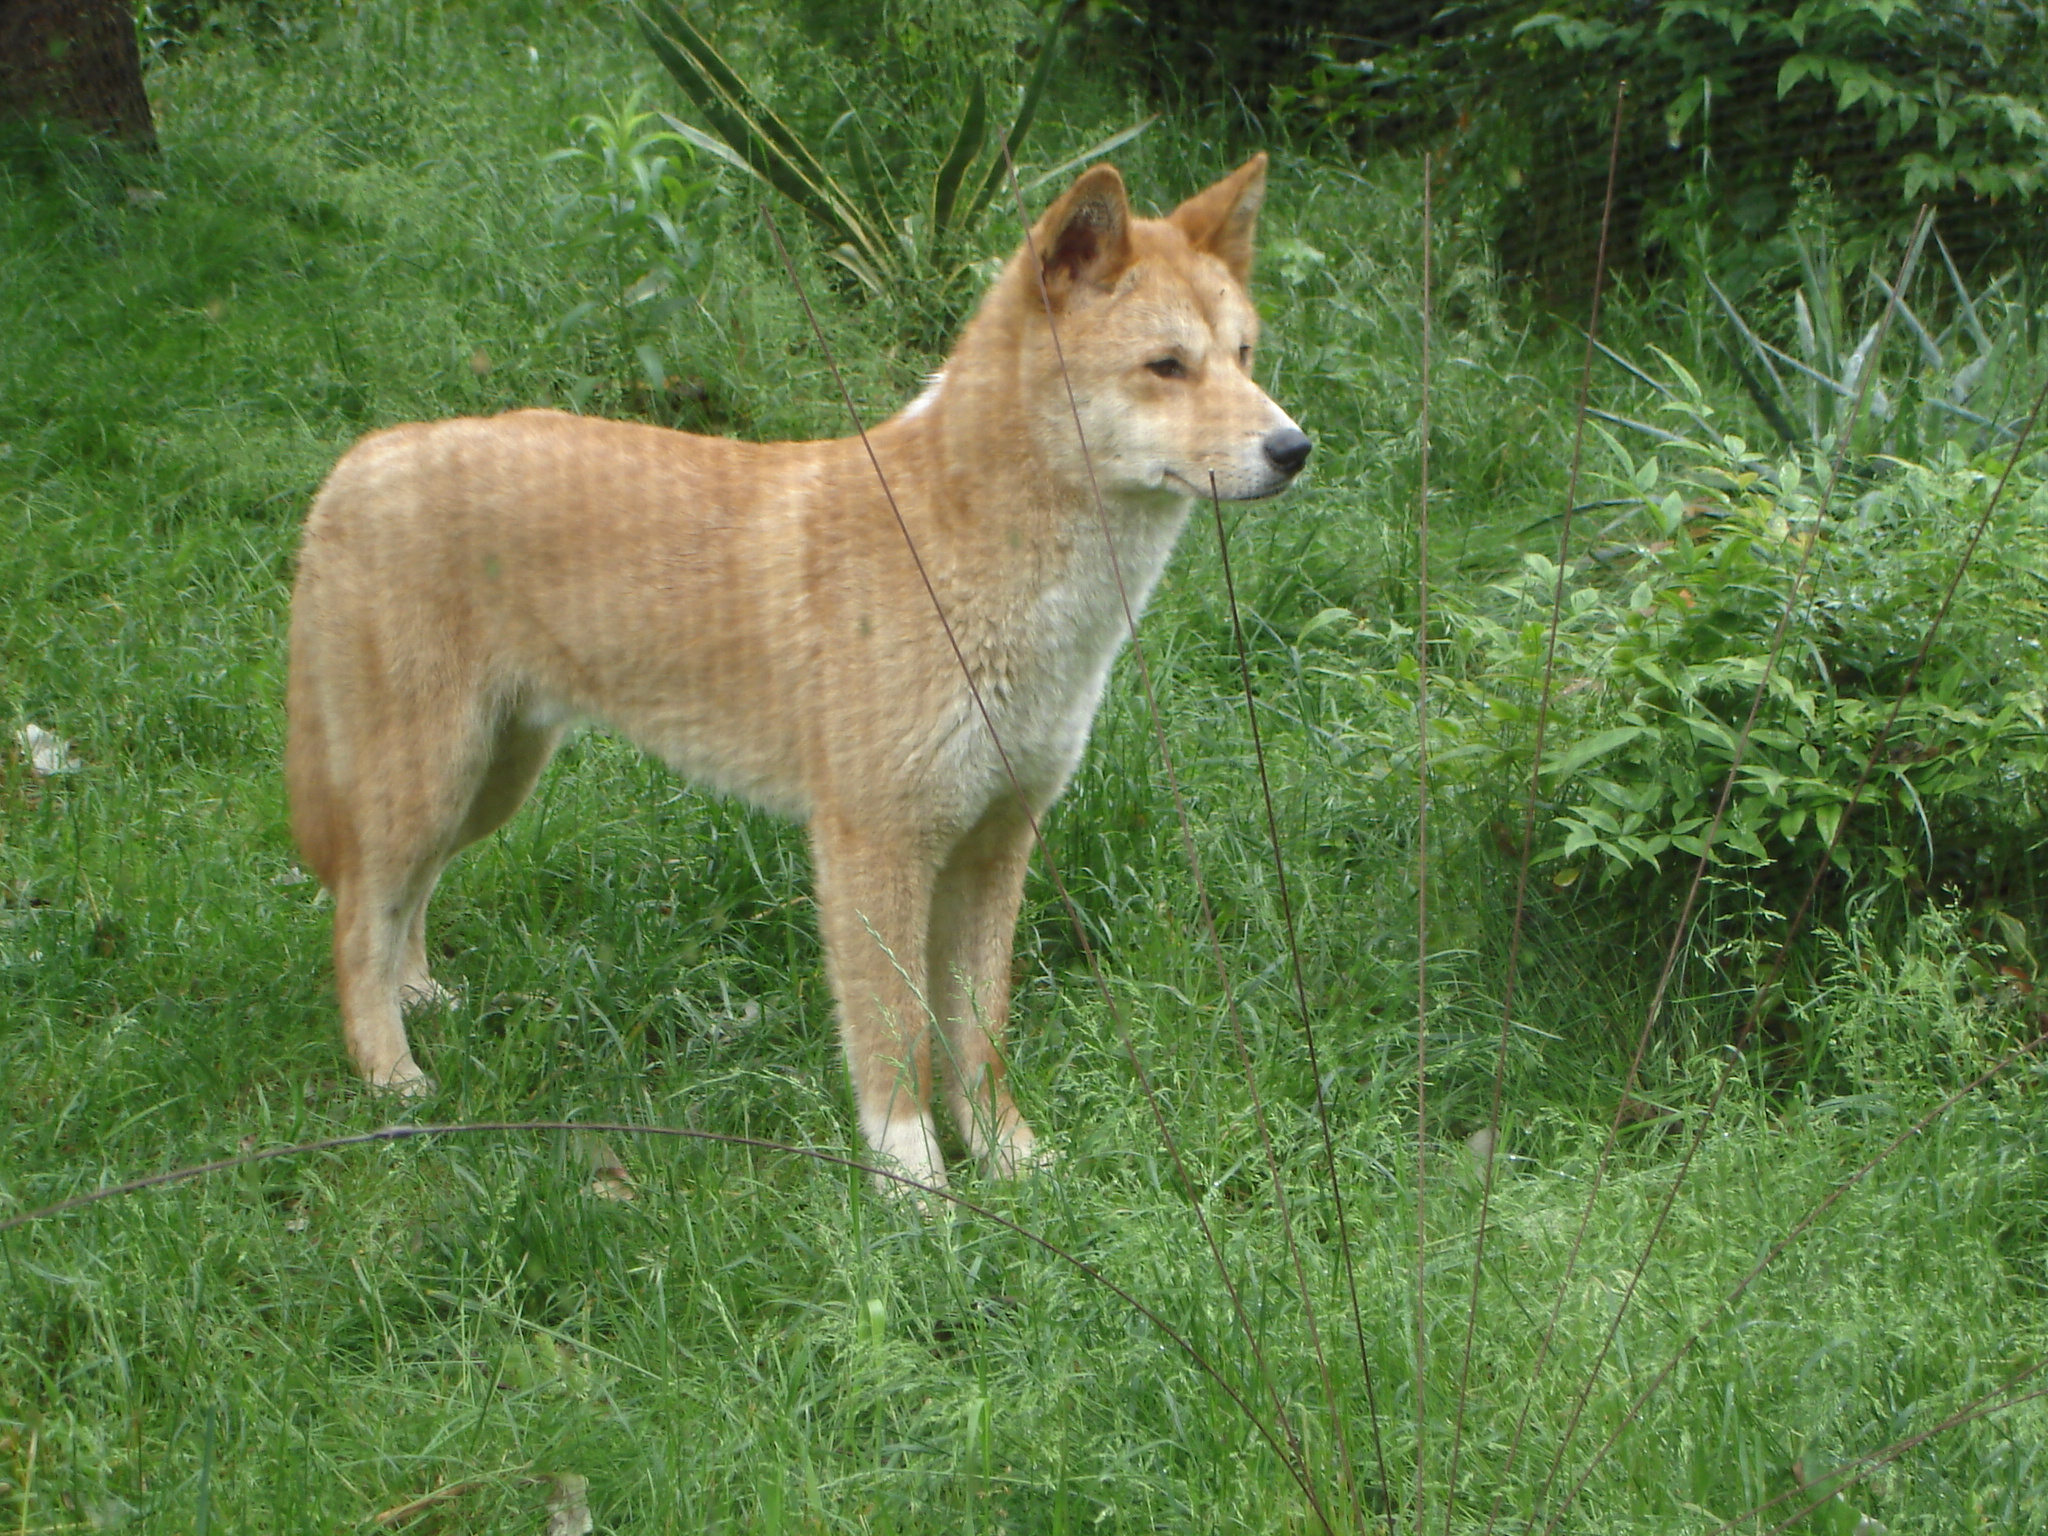 prospect park zoo welcomes four dingoes to its australian walkabout